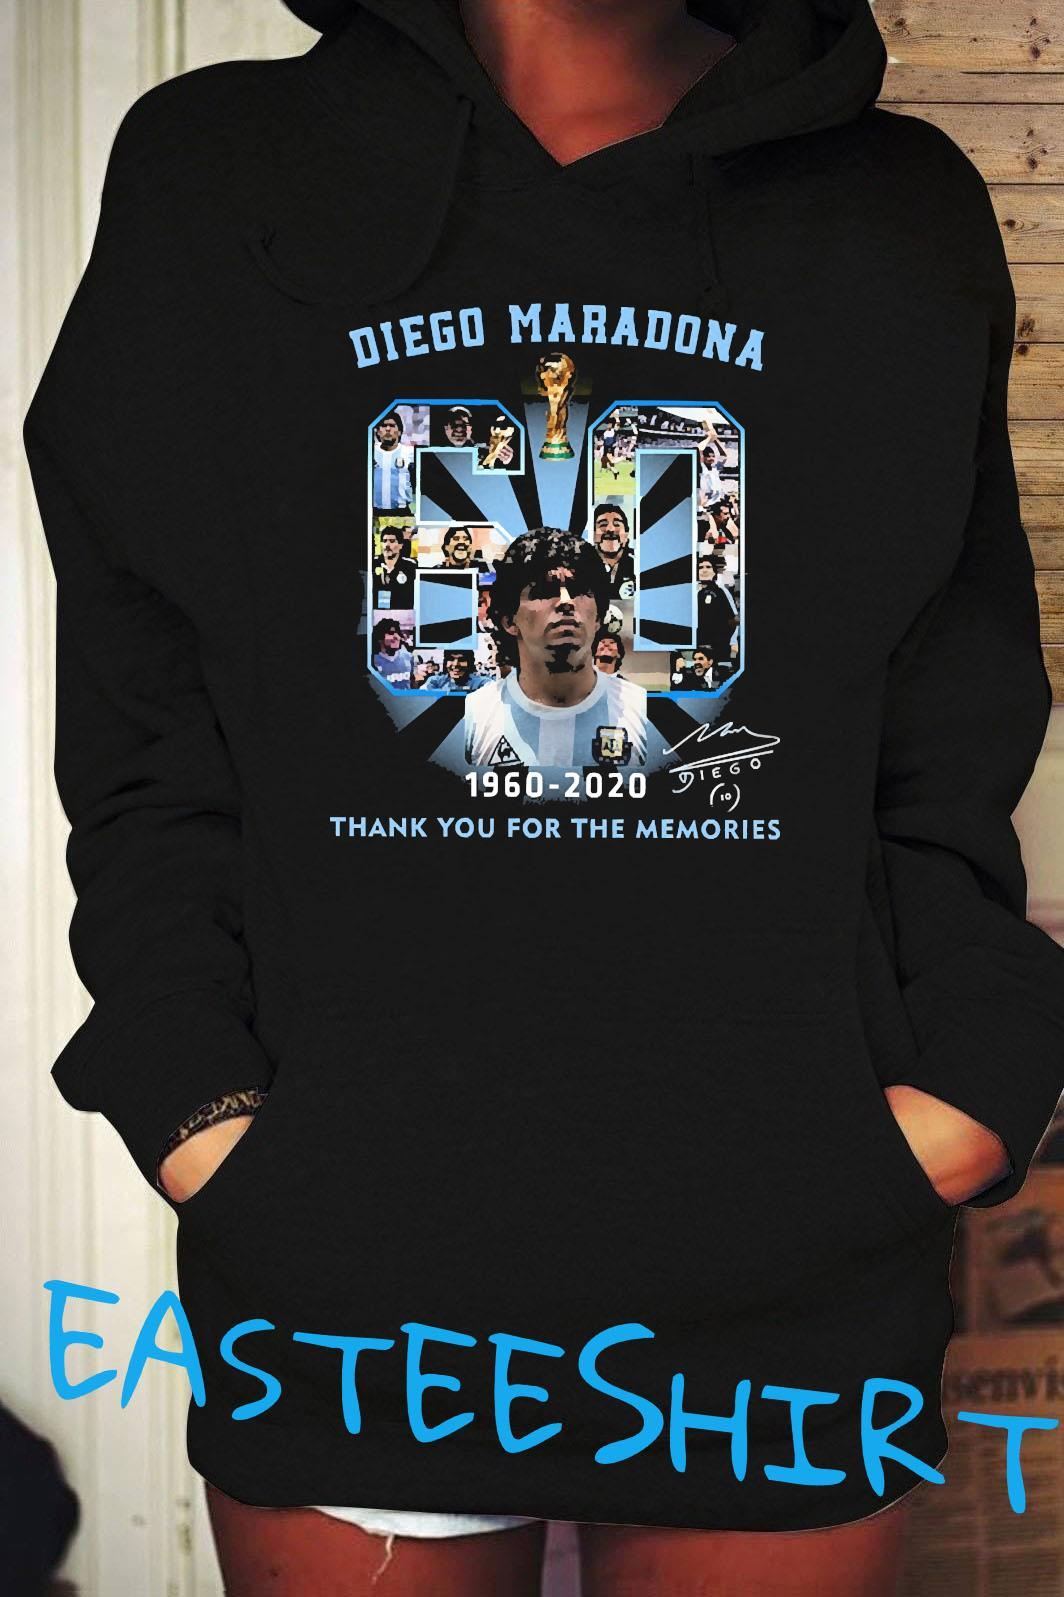 Diego Maradona 60 Years 1960 2020 Thank You For The Memories Shirt Hoodie